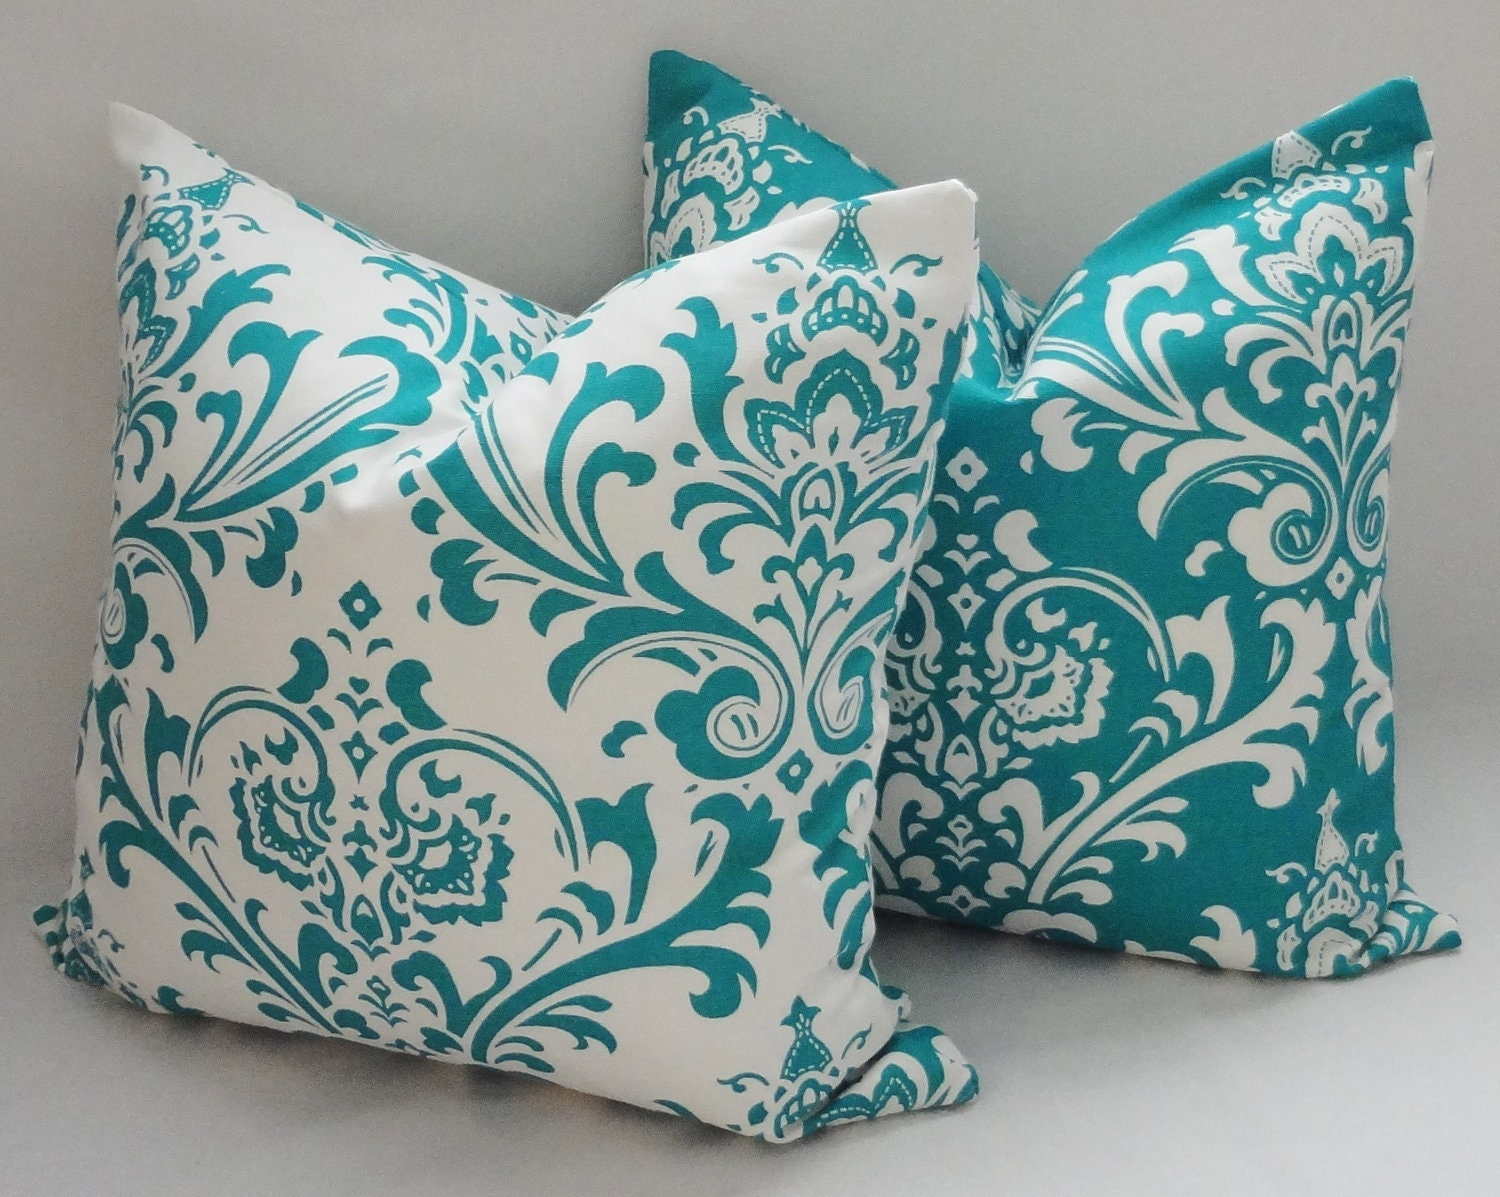 Decorative Throw Pillows Etsy : Items similar to Two Decorative Pillow Turquoise Damask Pillow Covers Throw Pillows 16x16 on Etsy